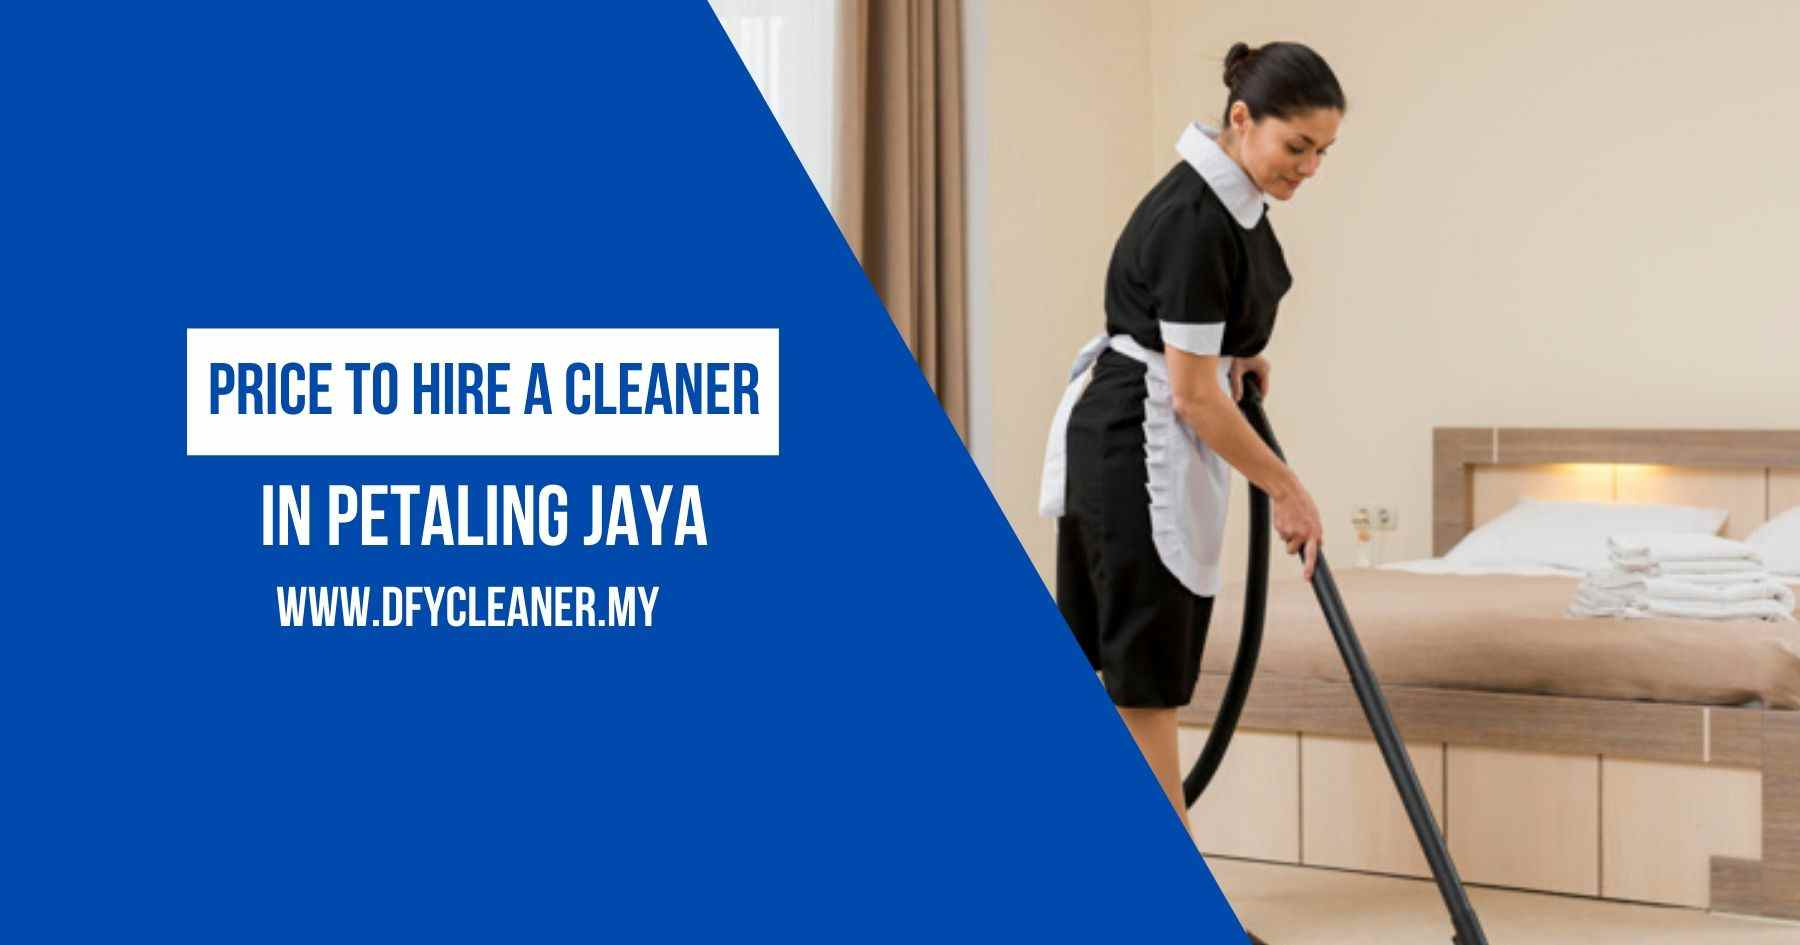 Price To Hire a Cleaner in Petaling Jaya